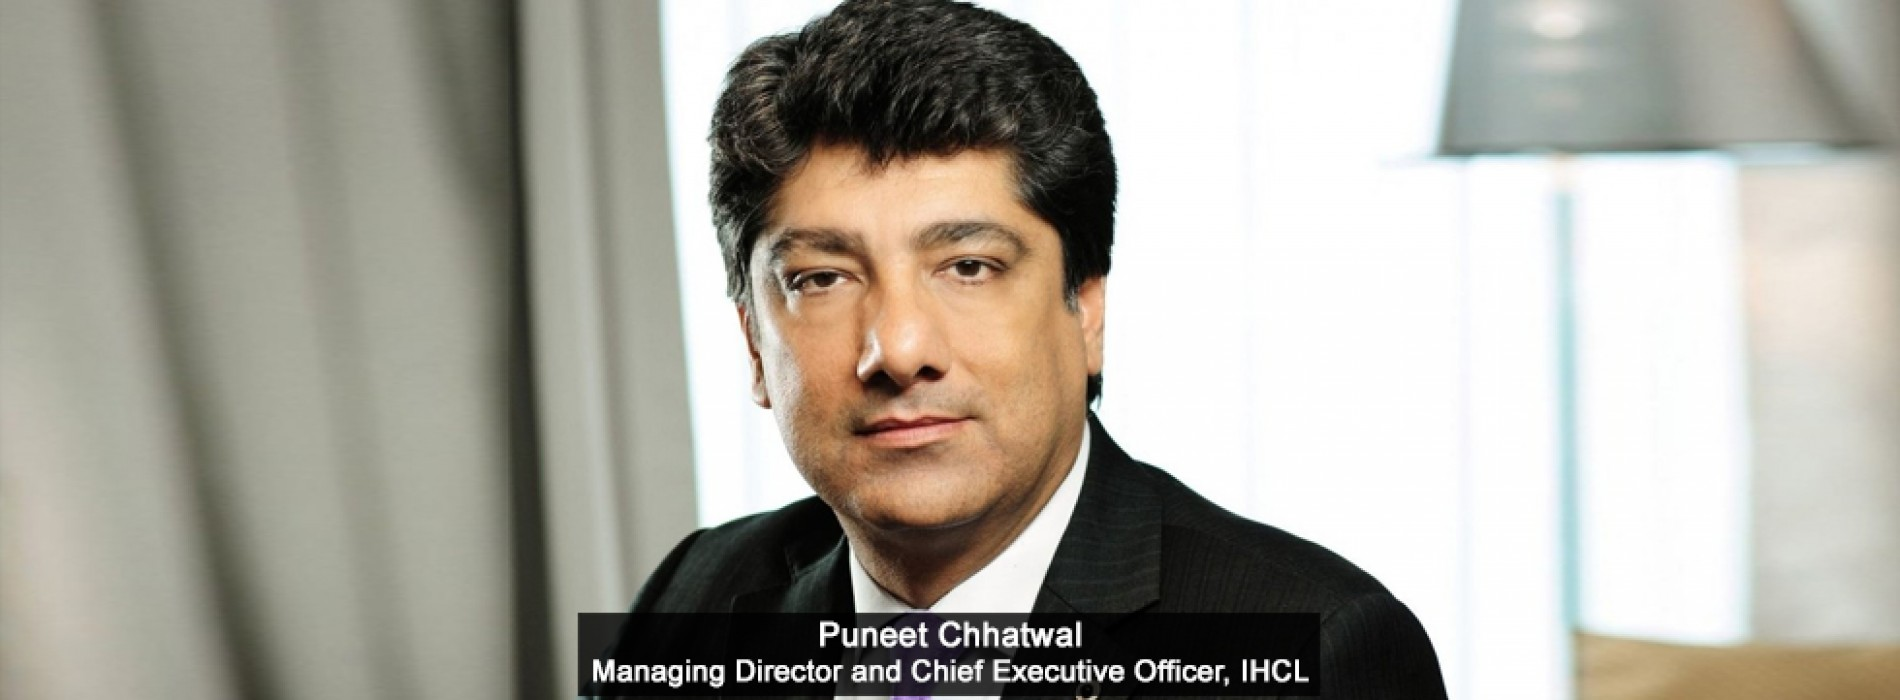 IHCL unveils 5 year strategy to spur growth, strengthen market leadership